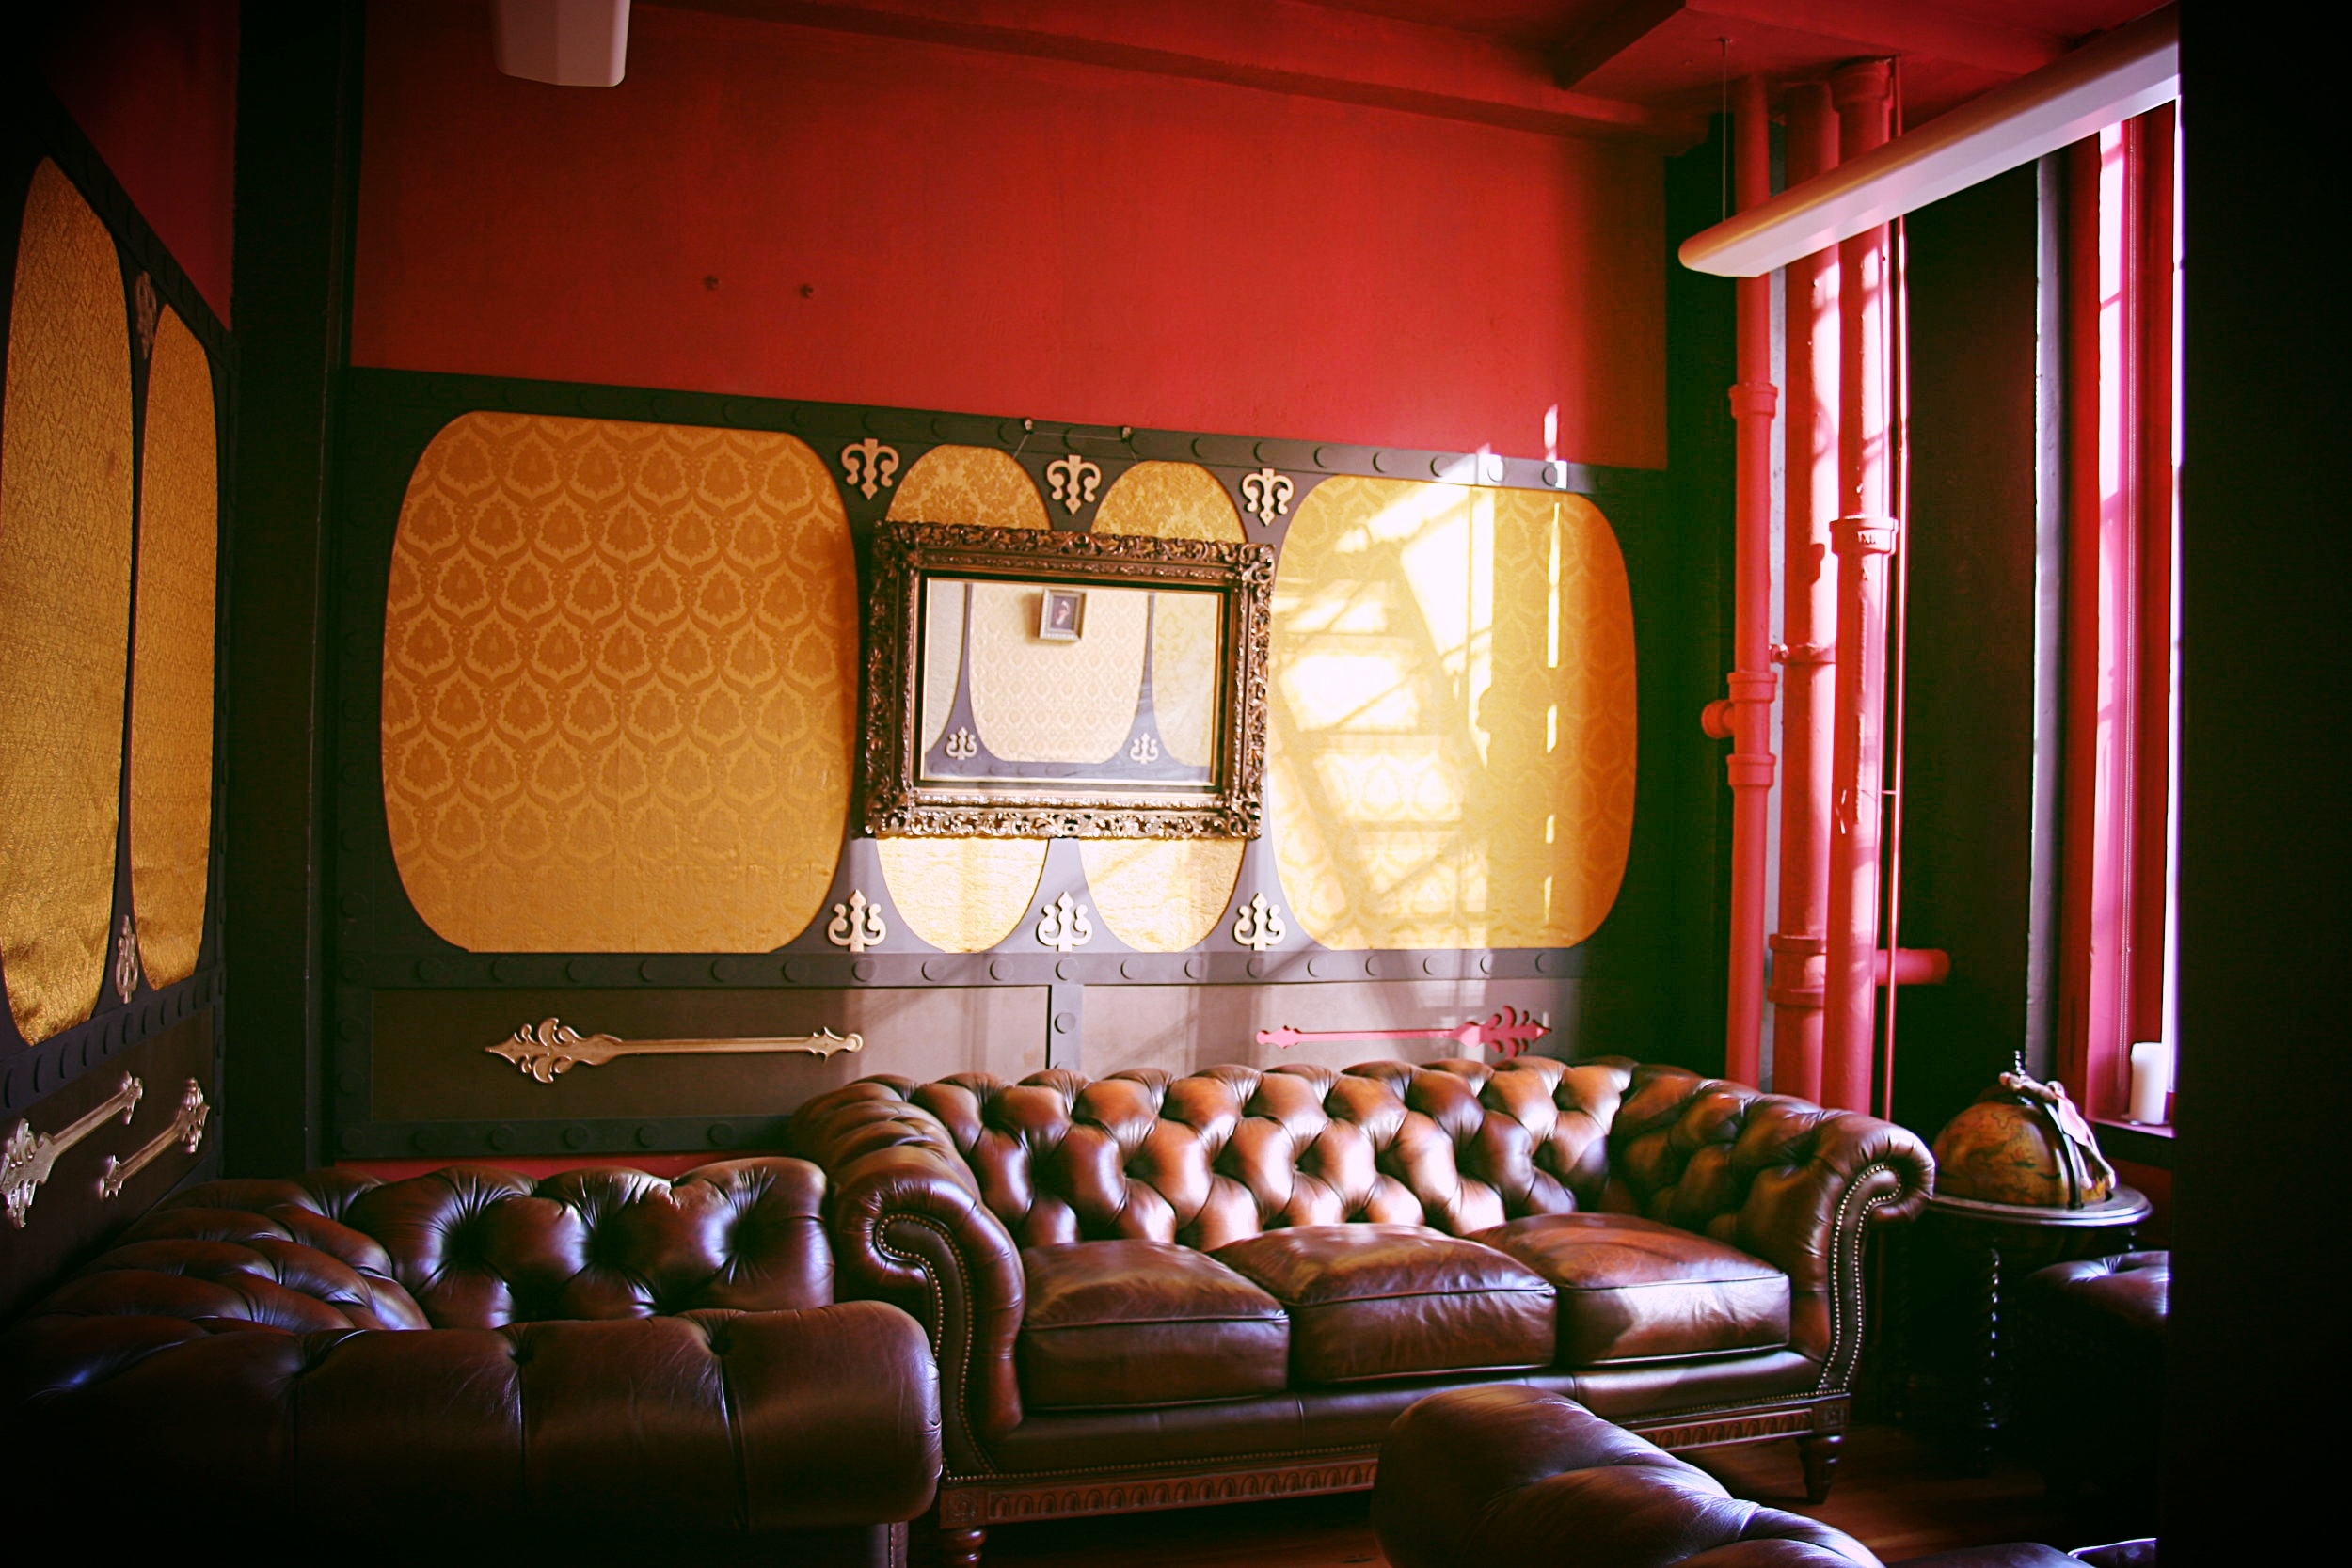 The secret room's furnishings, big,plush leather sofas, were acquired used from a Craigslist poster.